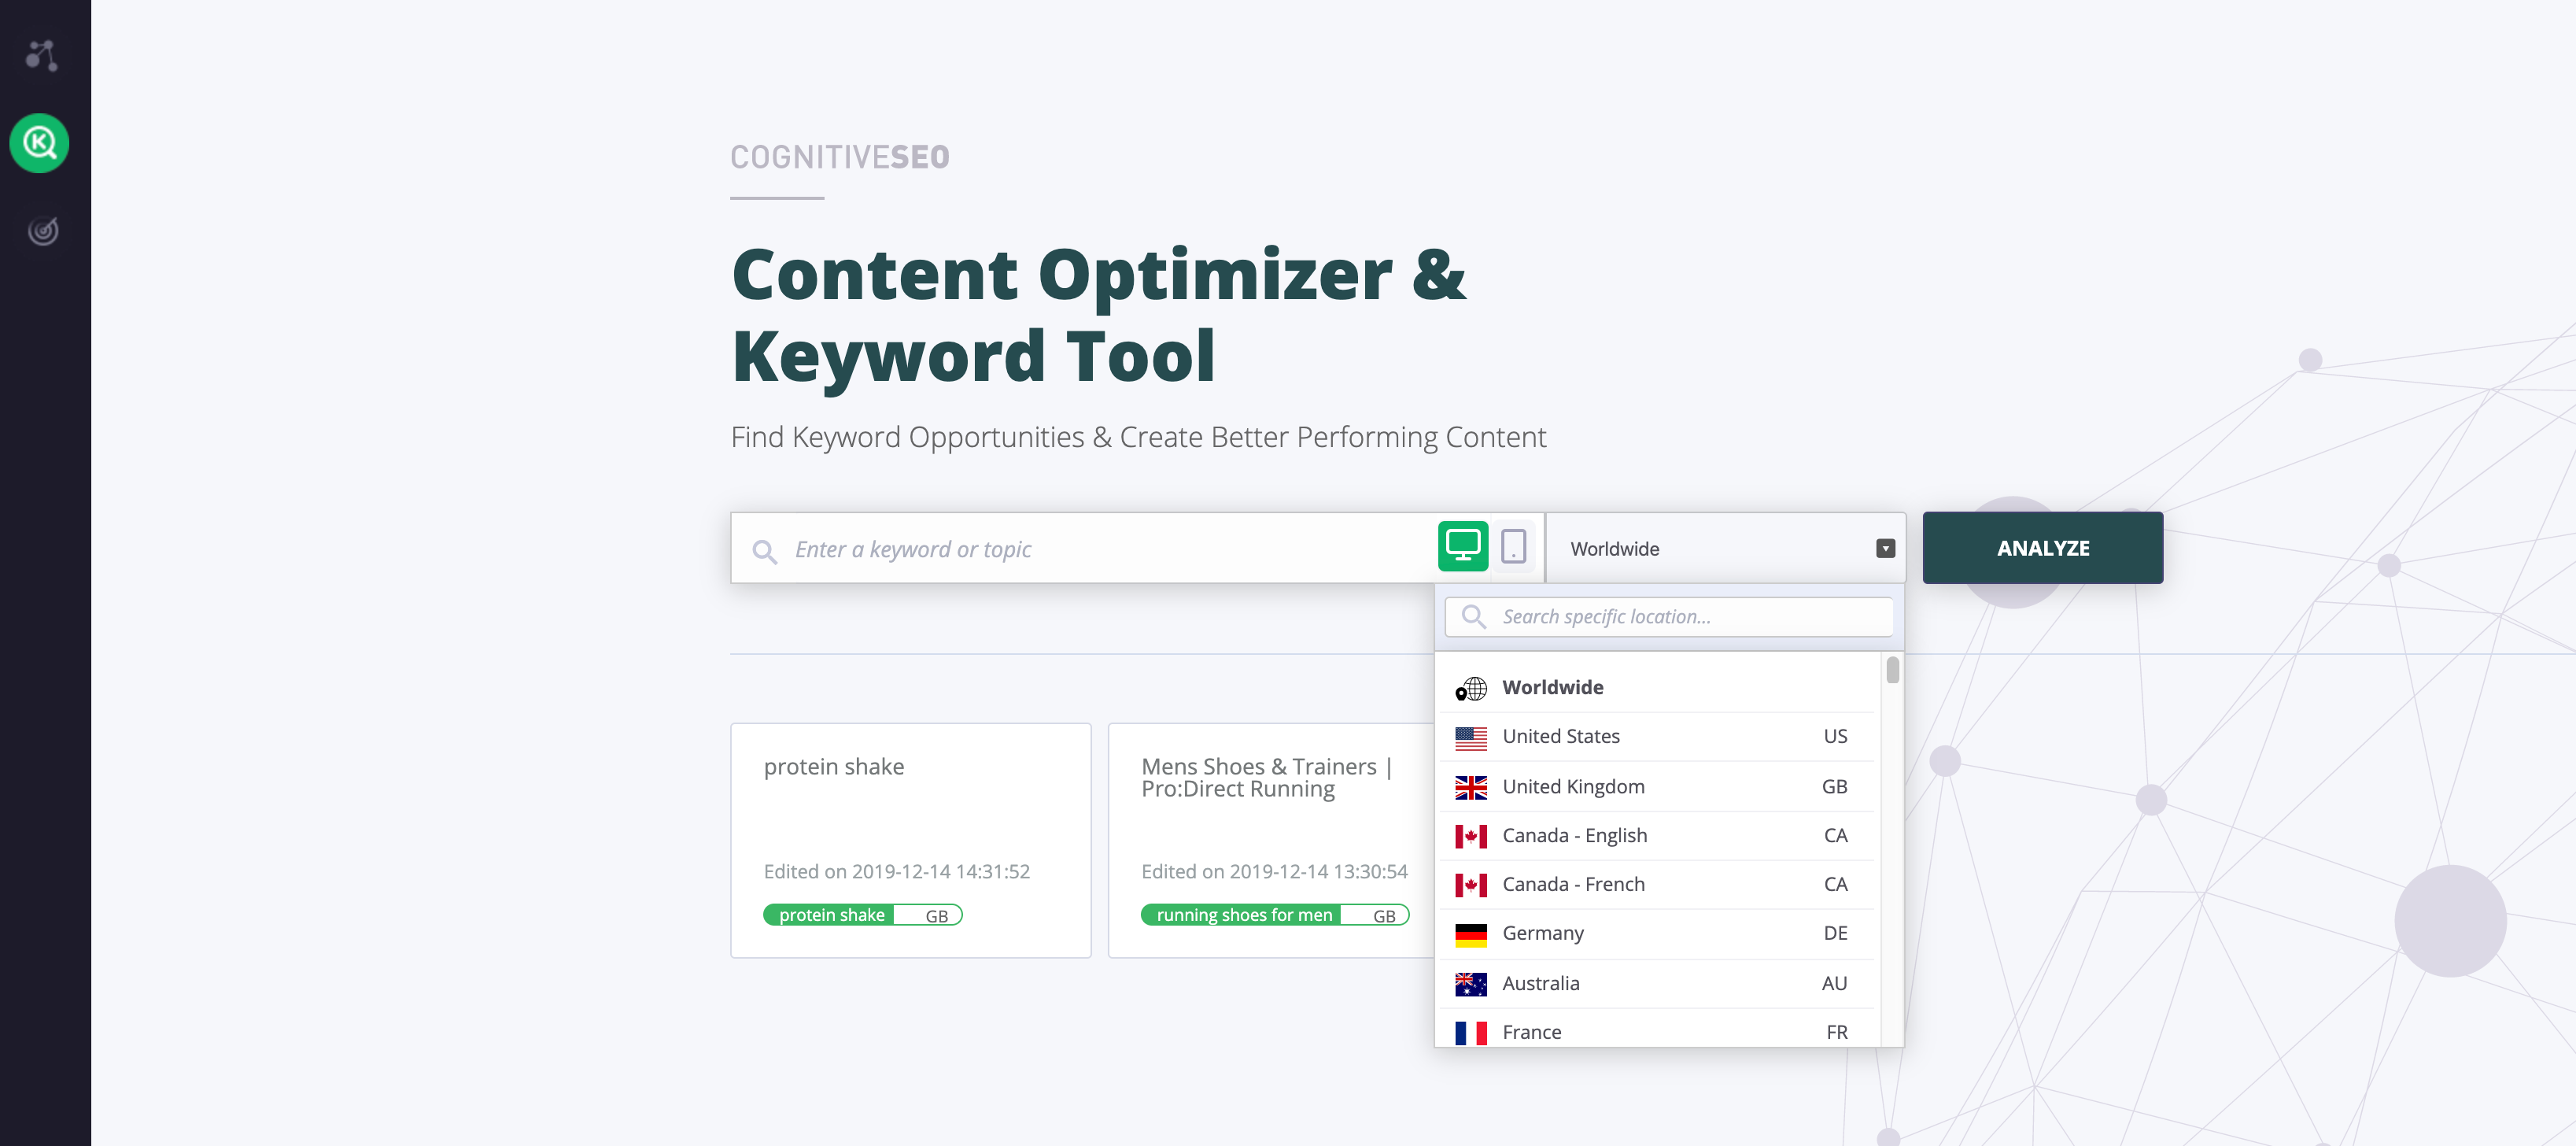 CognitiveSEO Content Optimiser & Keyword Tool